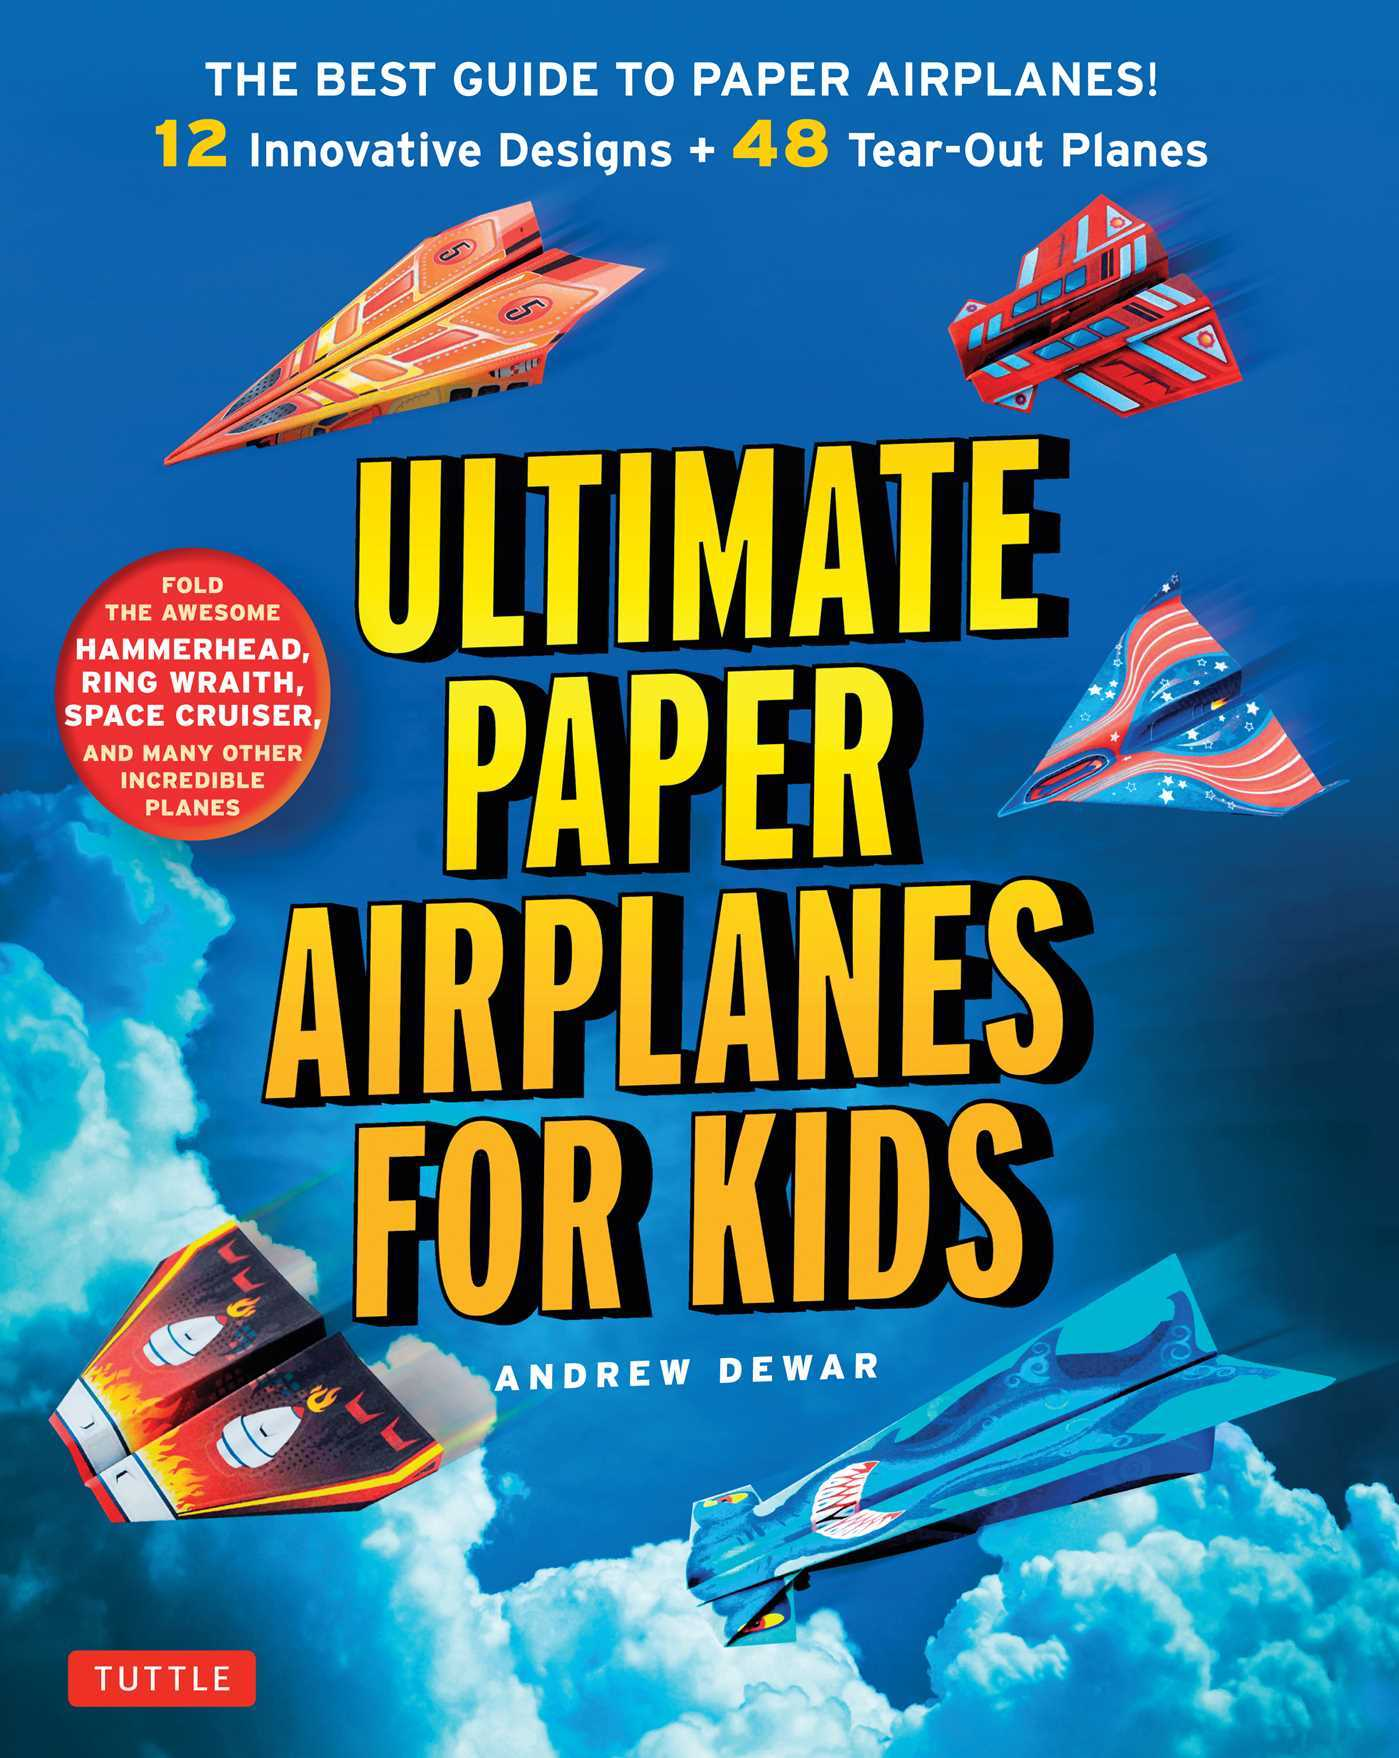 Ultimate Paper Airplanes for Kids: The Best Guide to Paper Airplanes - Complete Instructions + 48 Colorful Paper Planes! Andrew Dewar